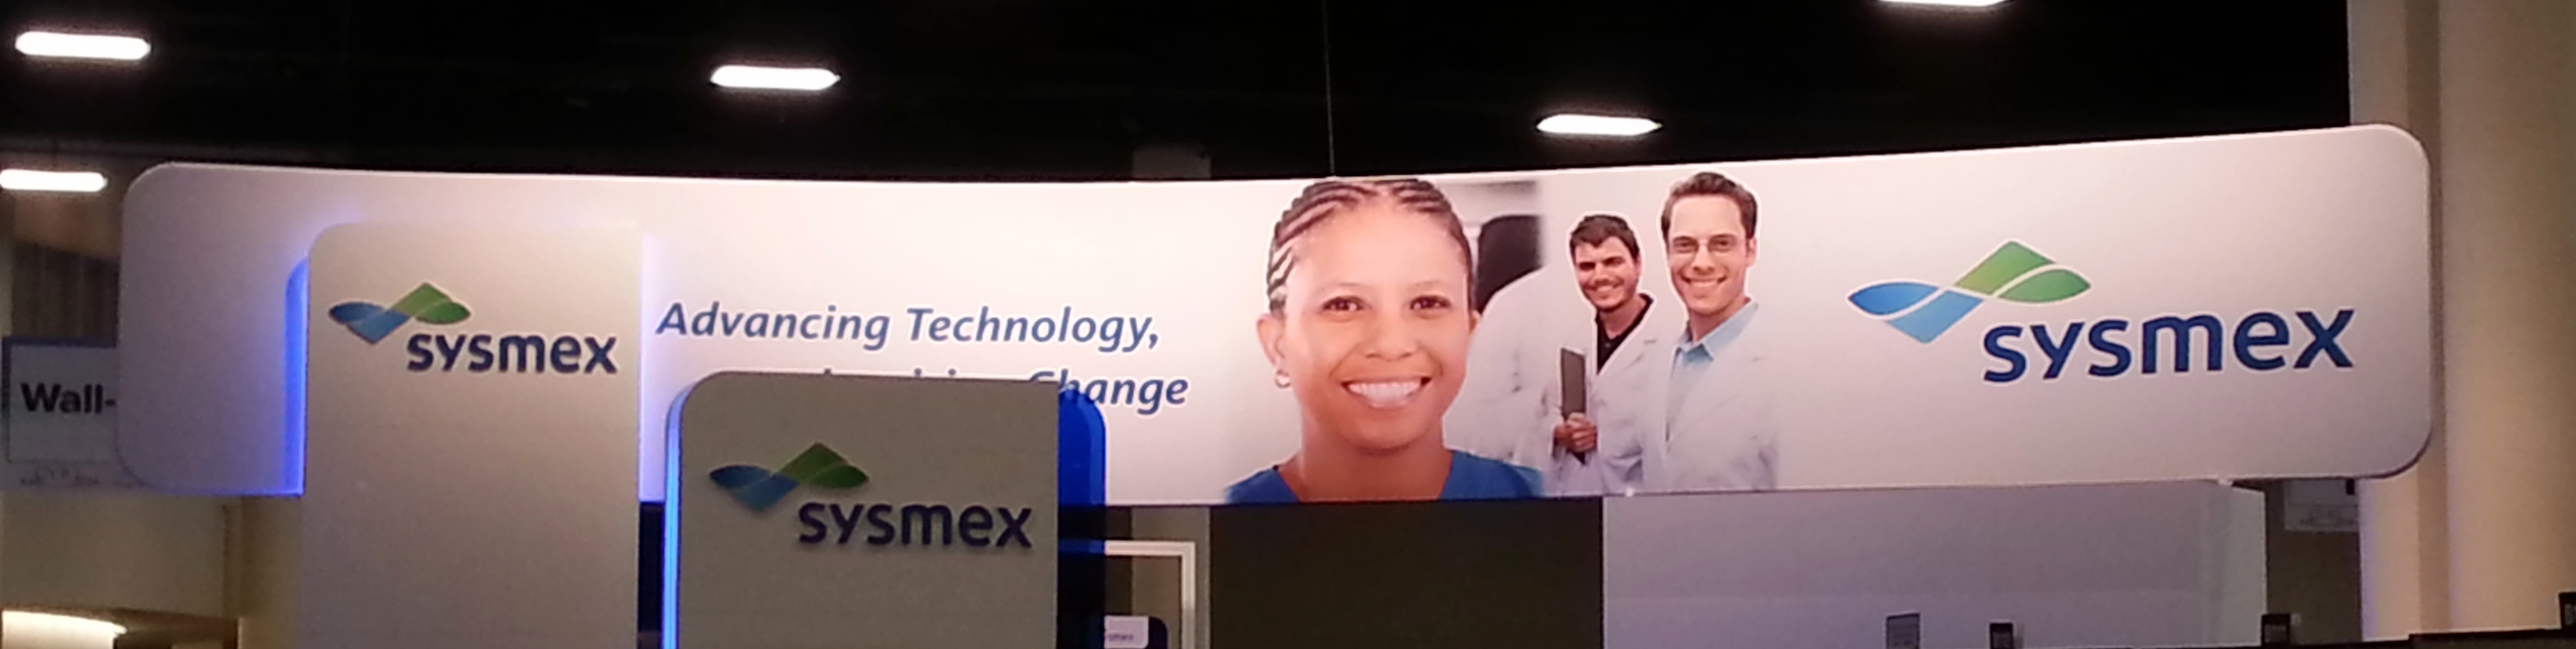 sysmex wide curved trade show hanging sign suspended above booth